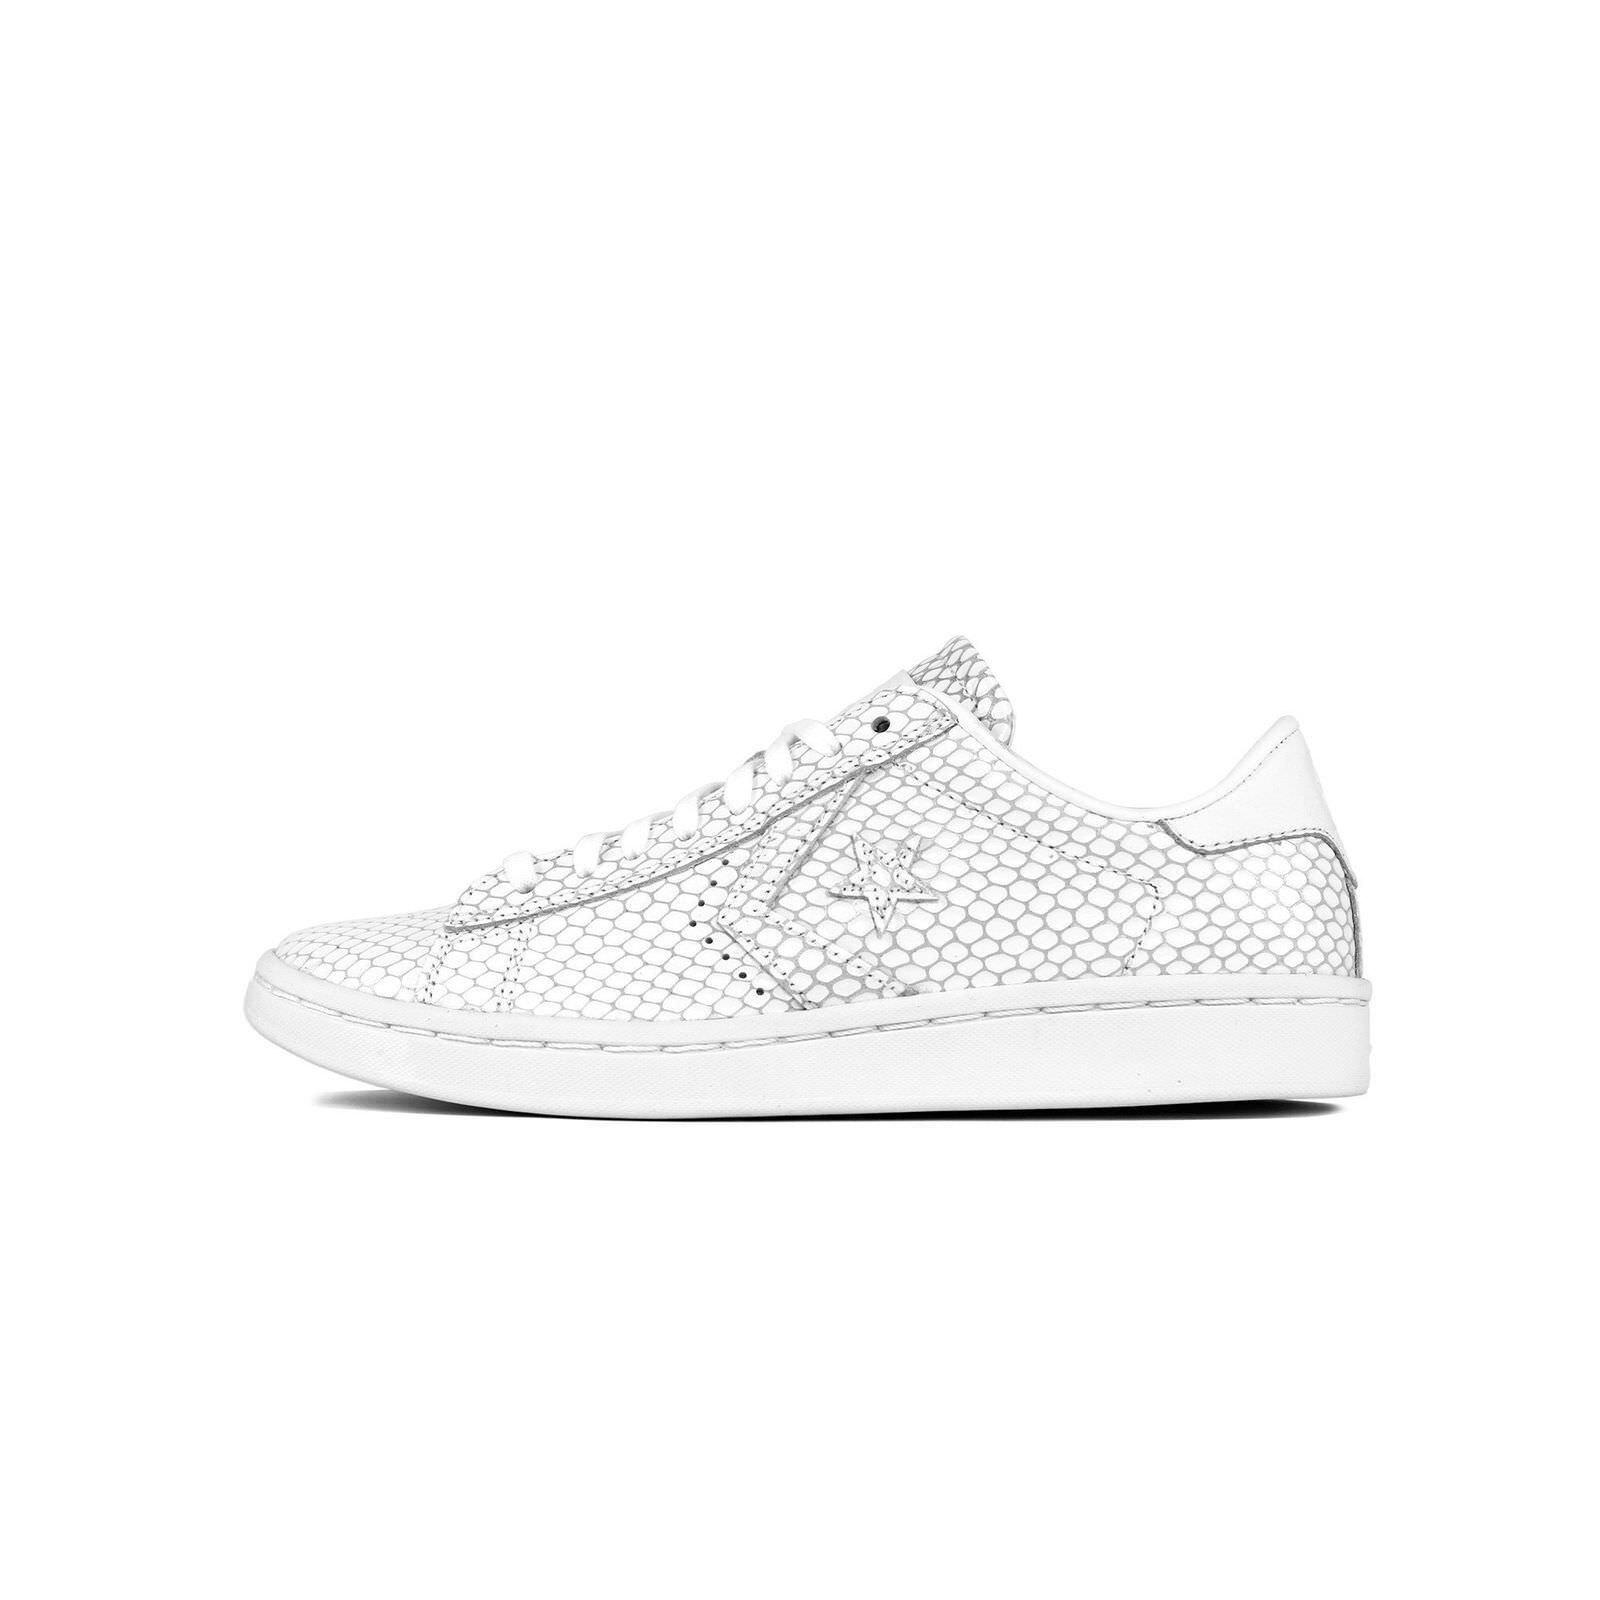 damen Converse Pro Leather LP Scale Leather Low Top Weiß 555928C Größe 8